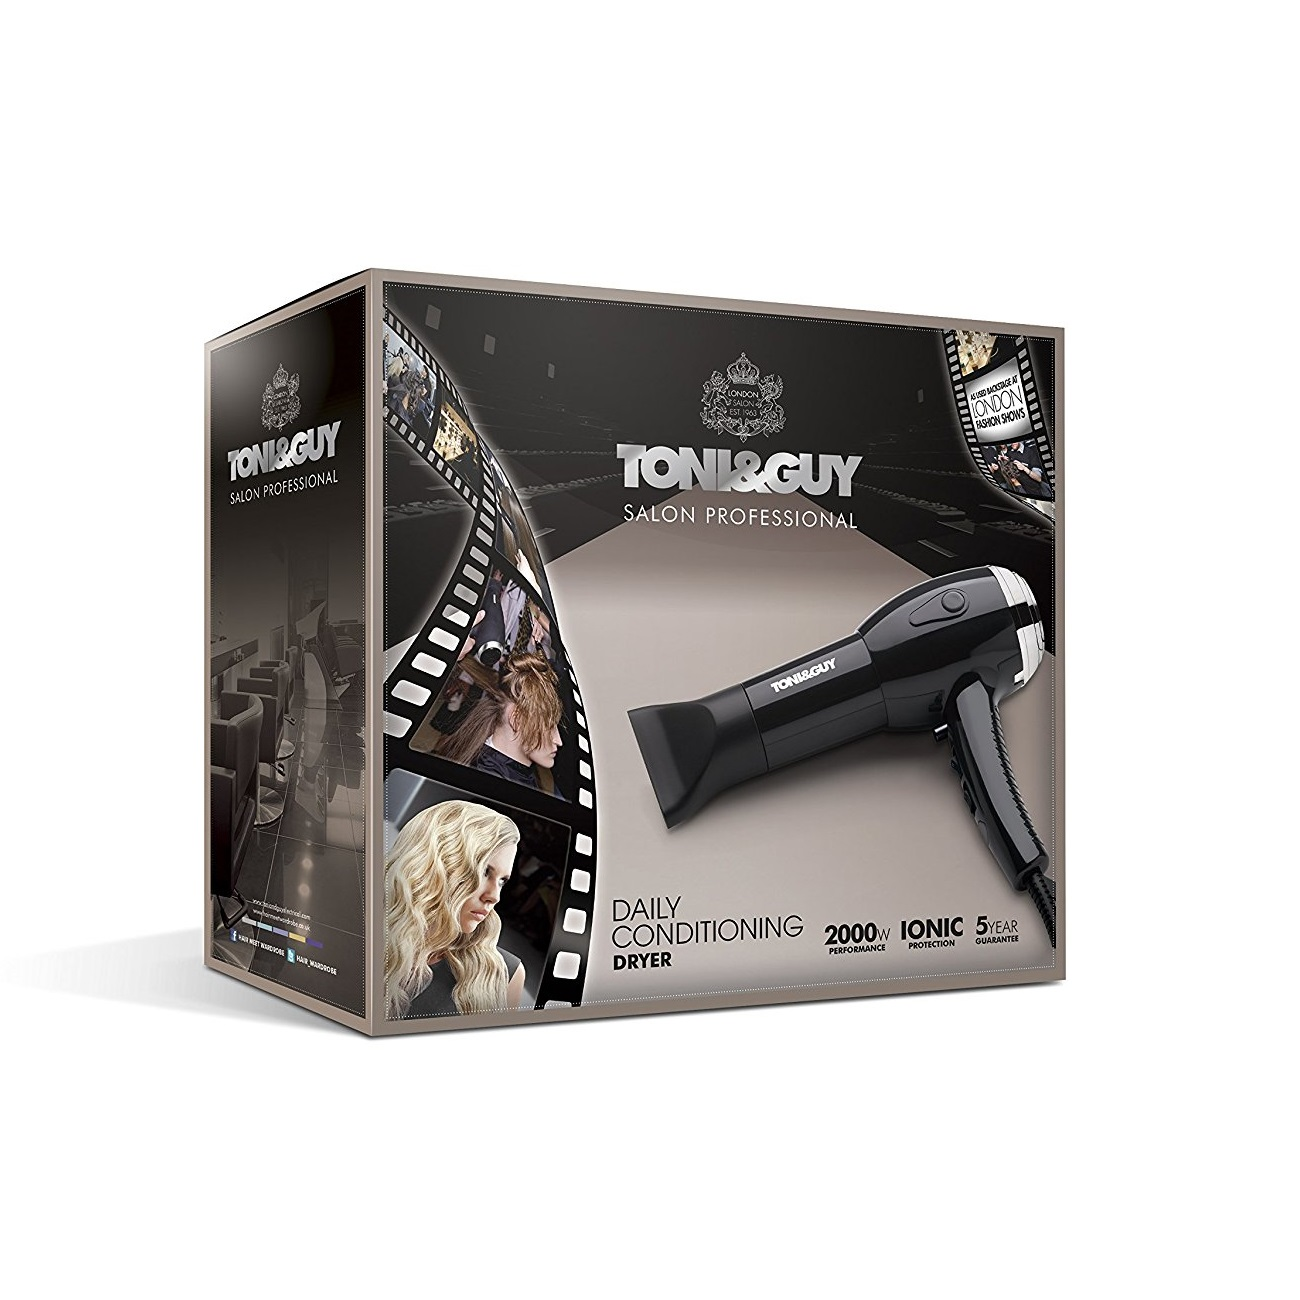 TONI & GUY 2000W IONIC HAIR DRYER